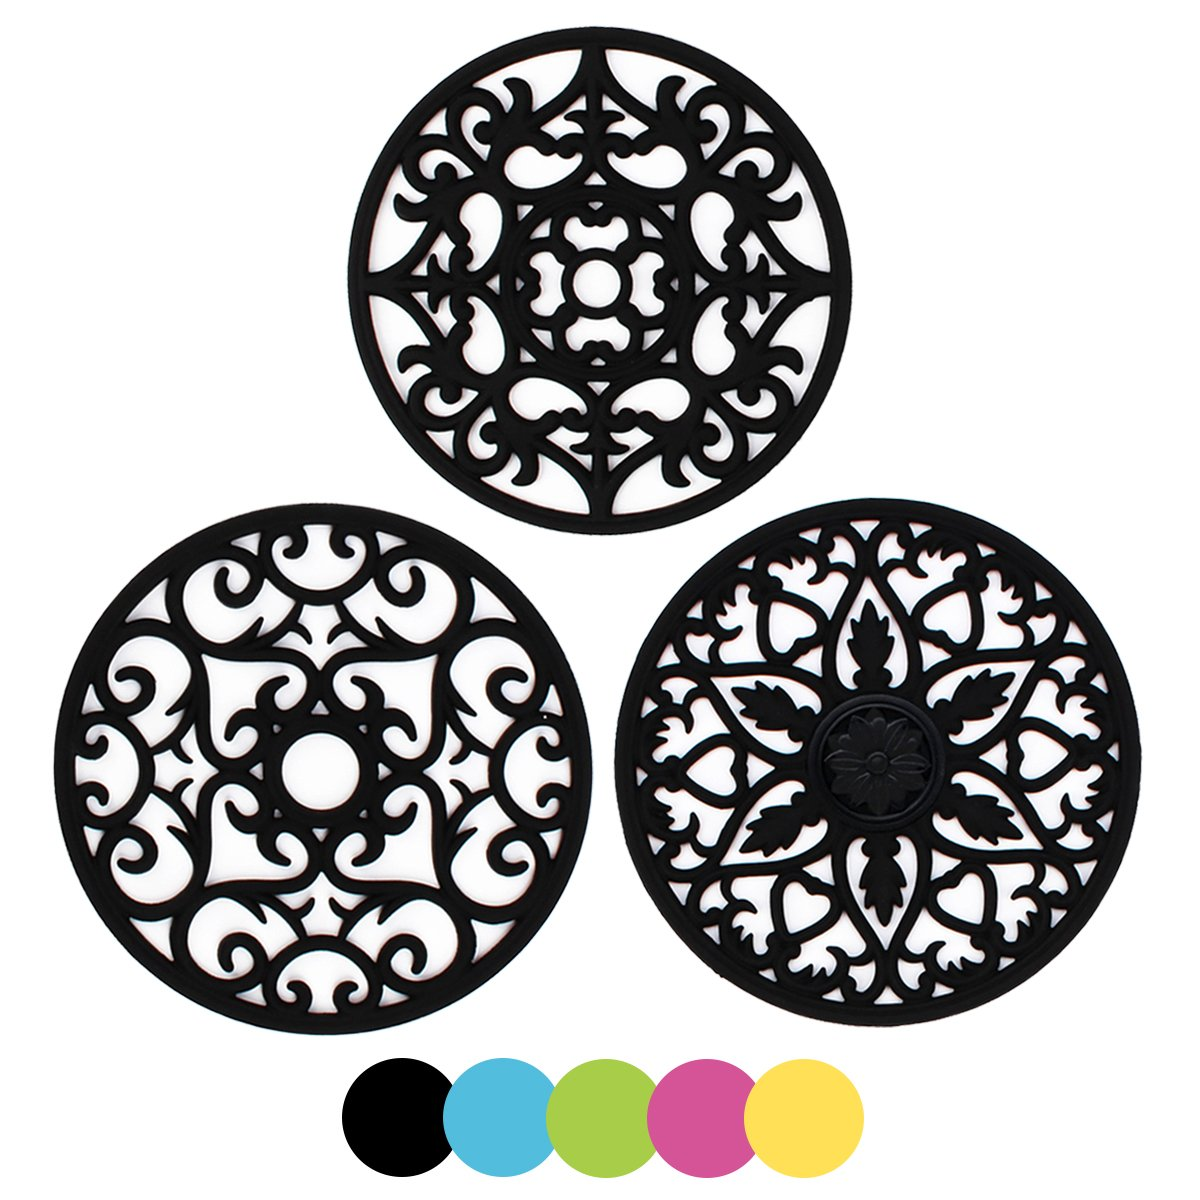 ME.FAN 3 Set Silicone Multi-Use Intricately Carved Trivet Mat - Insulated Flexible Durable Non Slip Coasters (Black) by ME.FAN (Image #1)